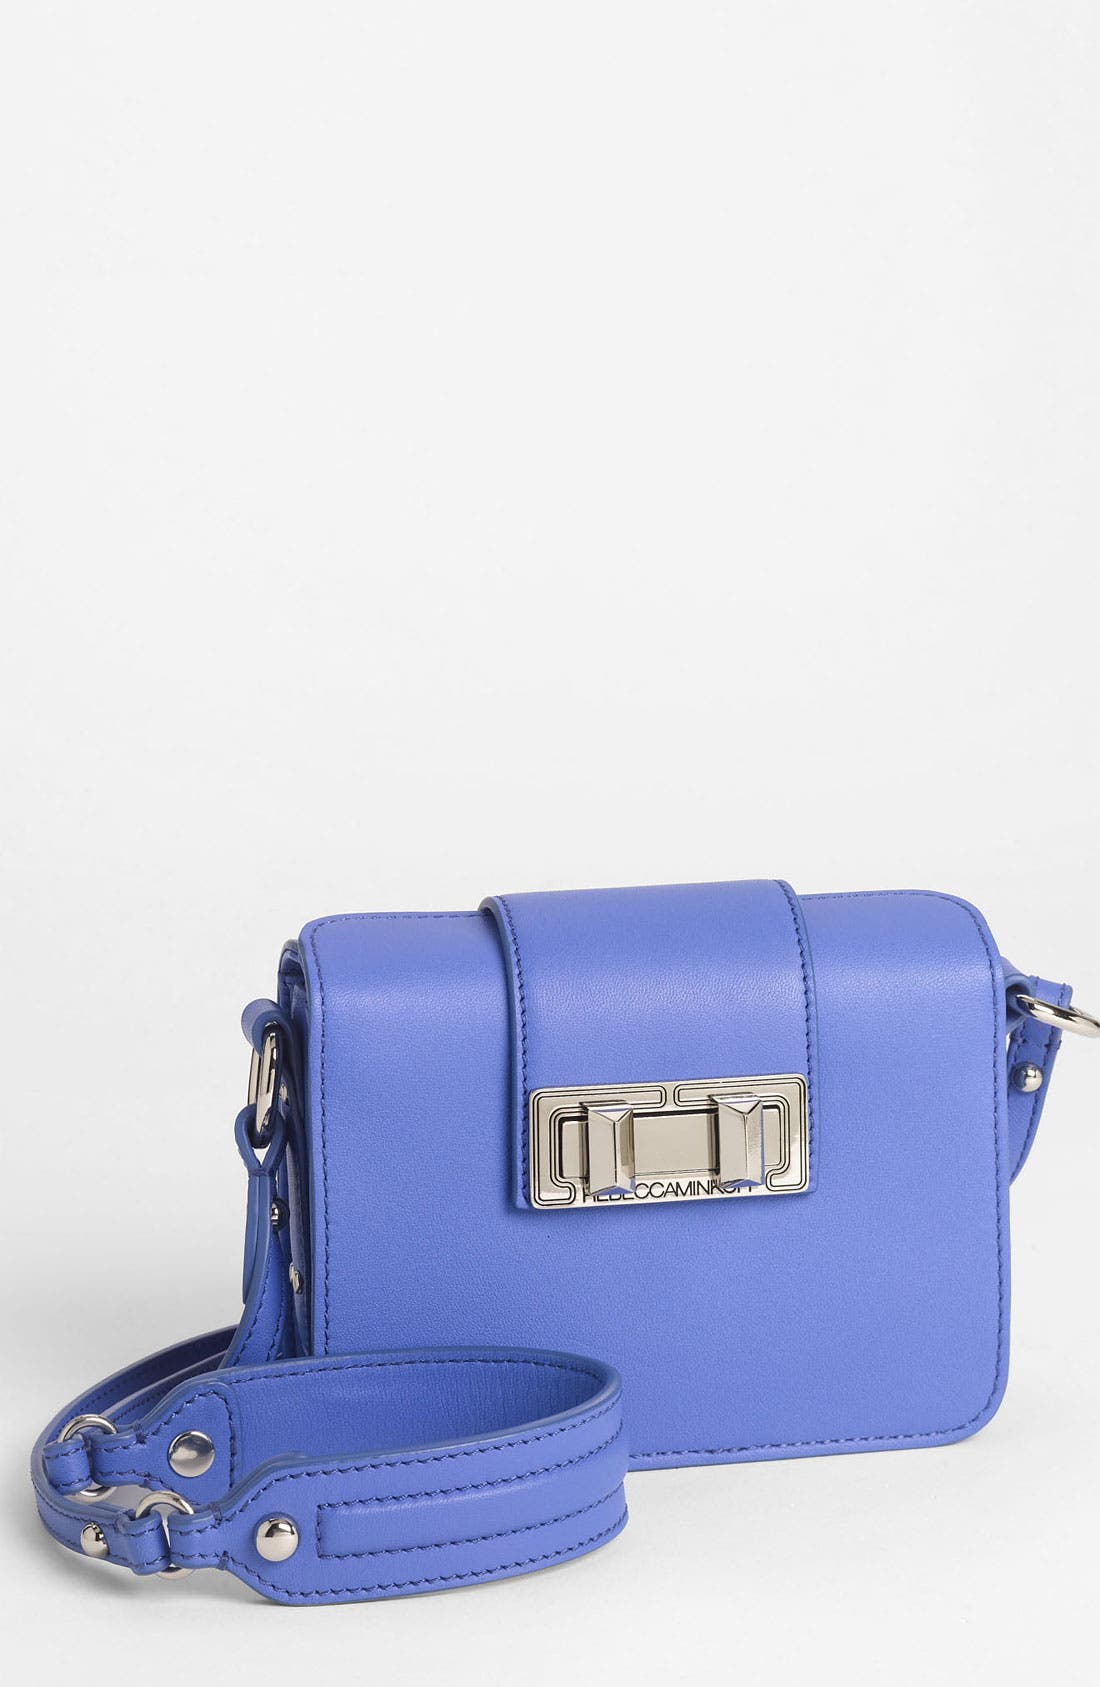 Main Image - Rebecca Minkoff 'Box - Mini' Crossbody Bag